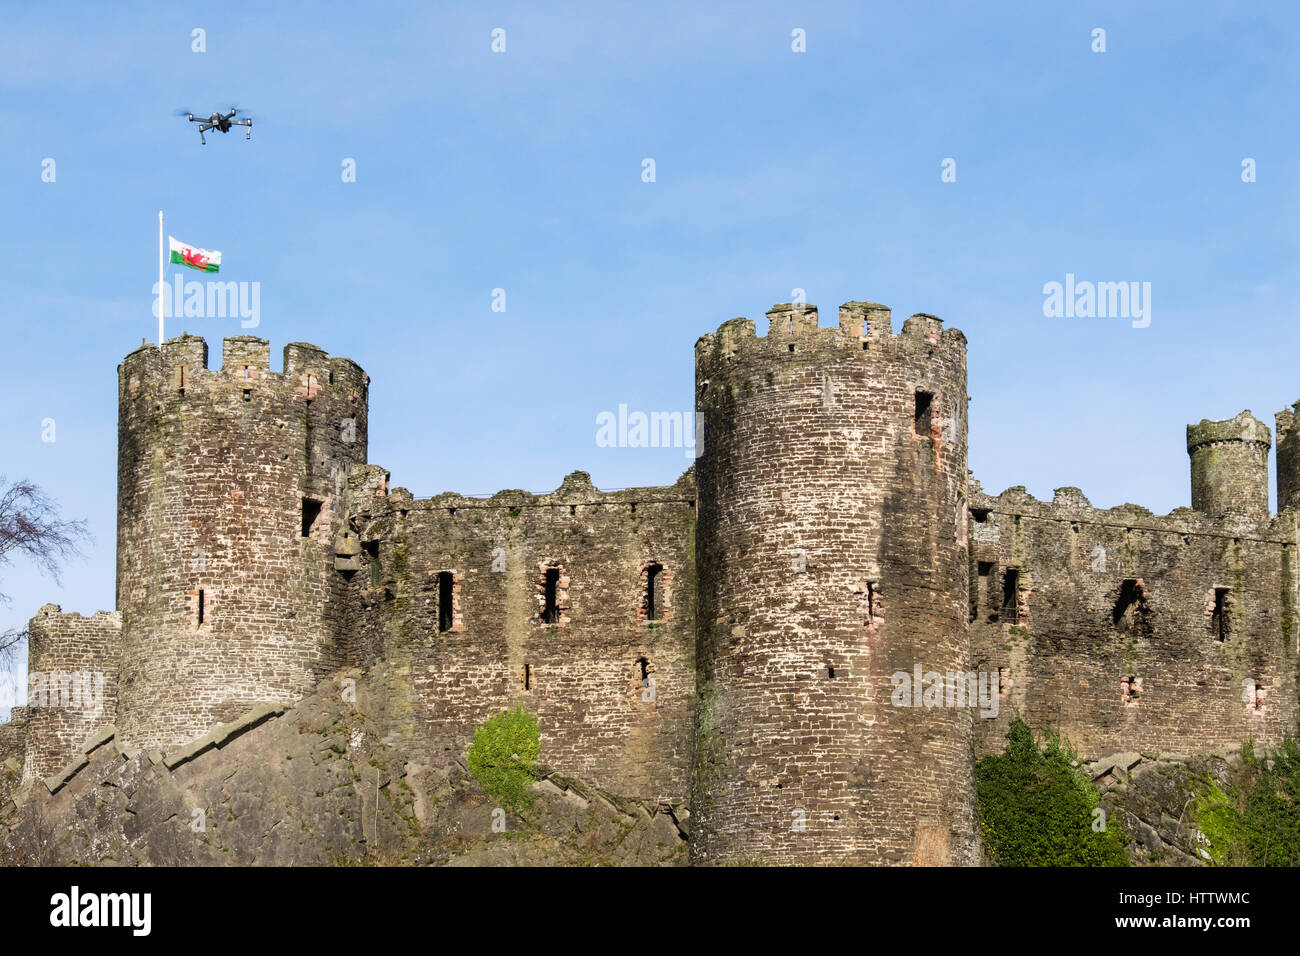 Conwy castle with Welsh flag and small drone flying above. Conwy, Wales, UK, Britain, Europe - Stock Image